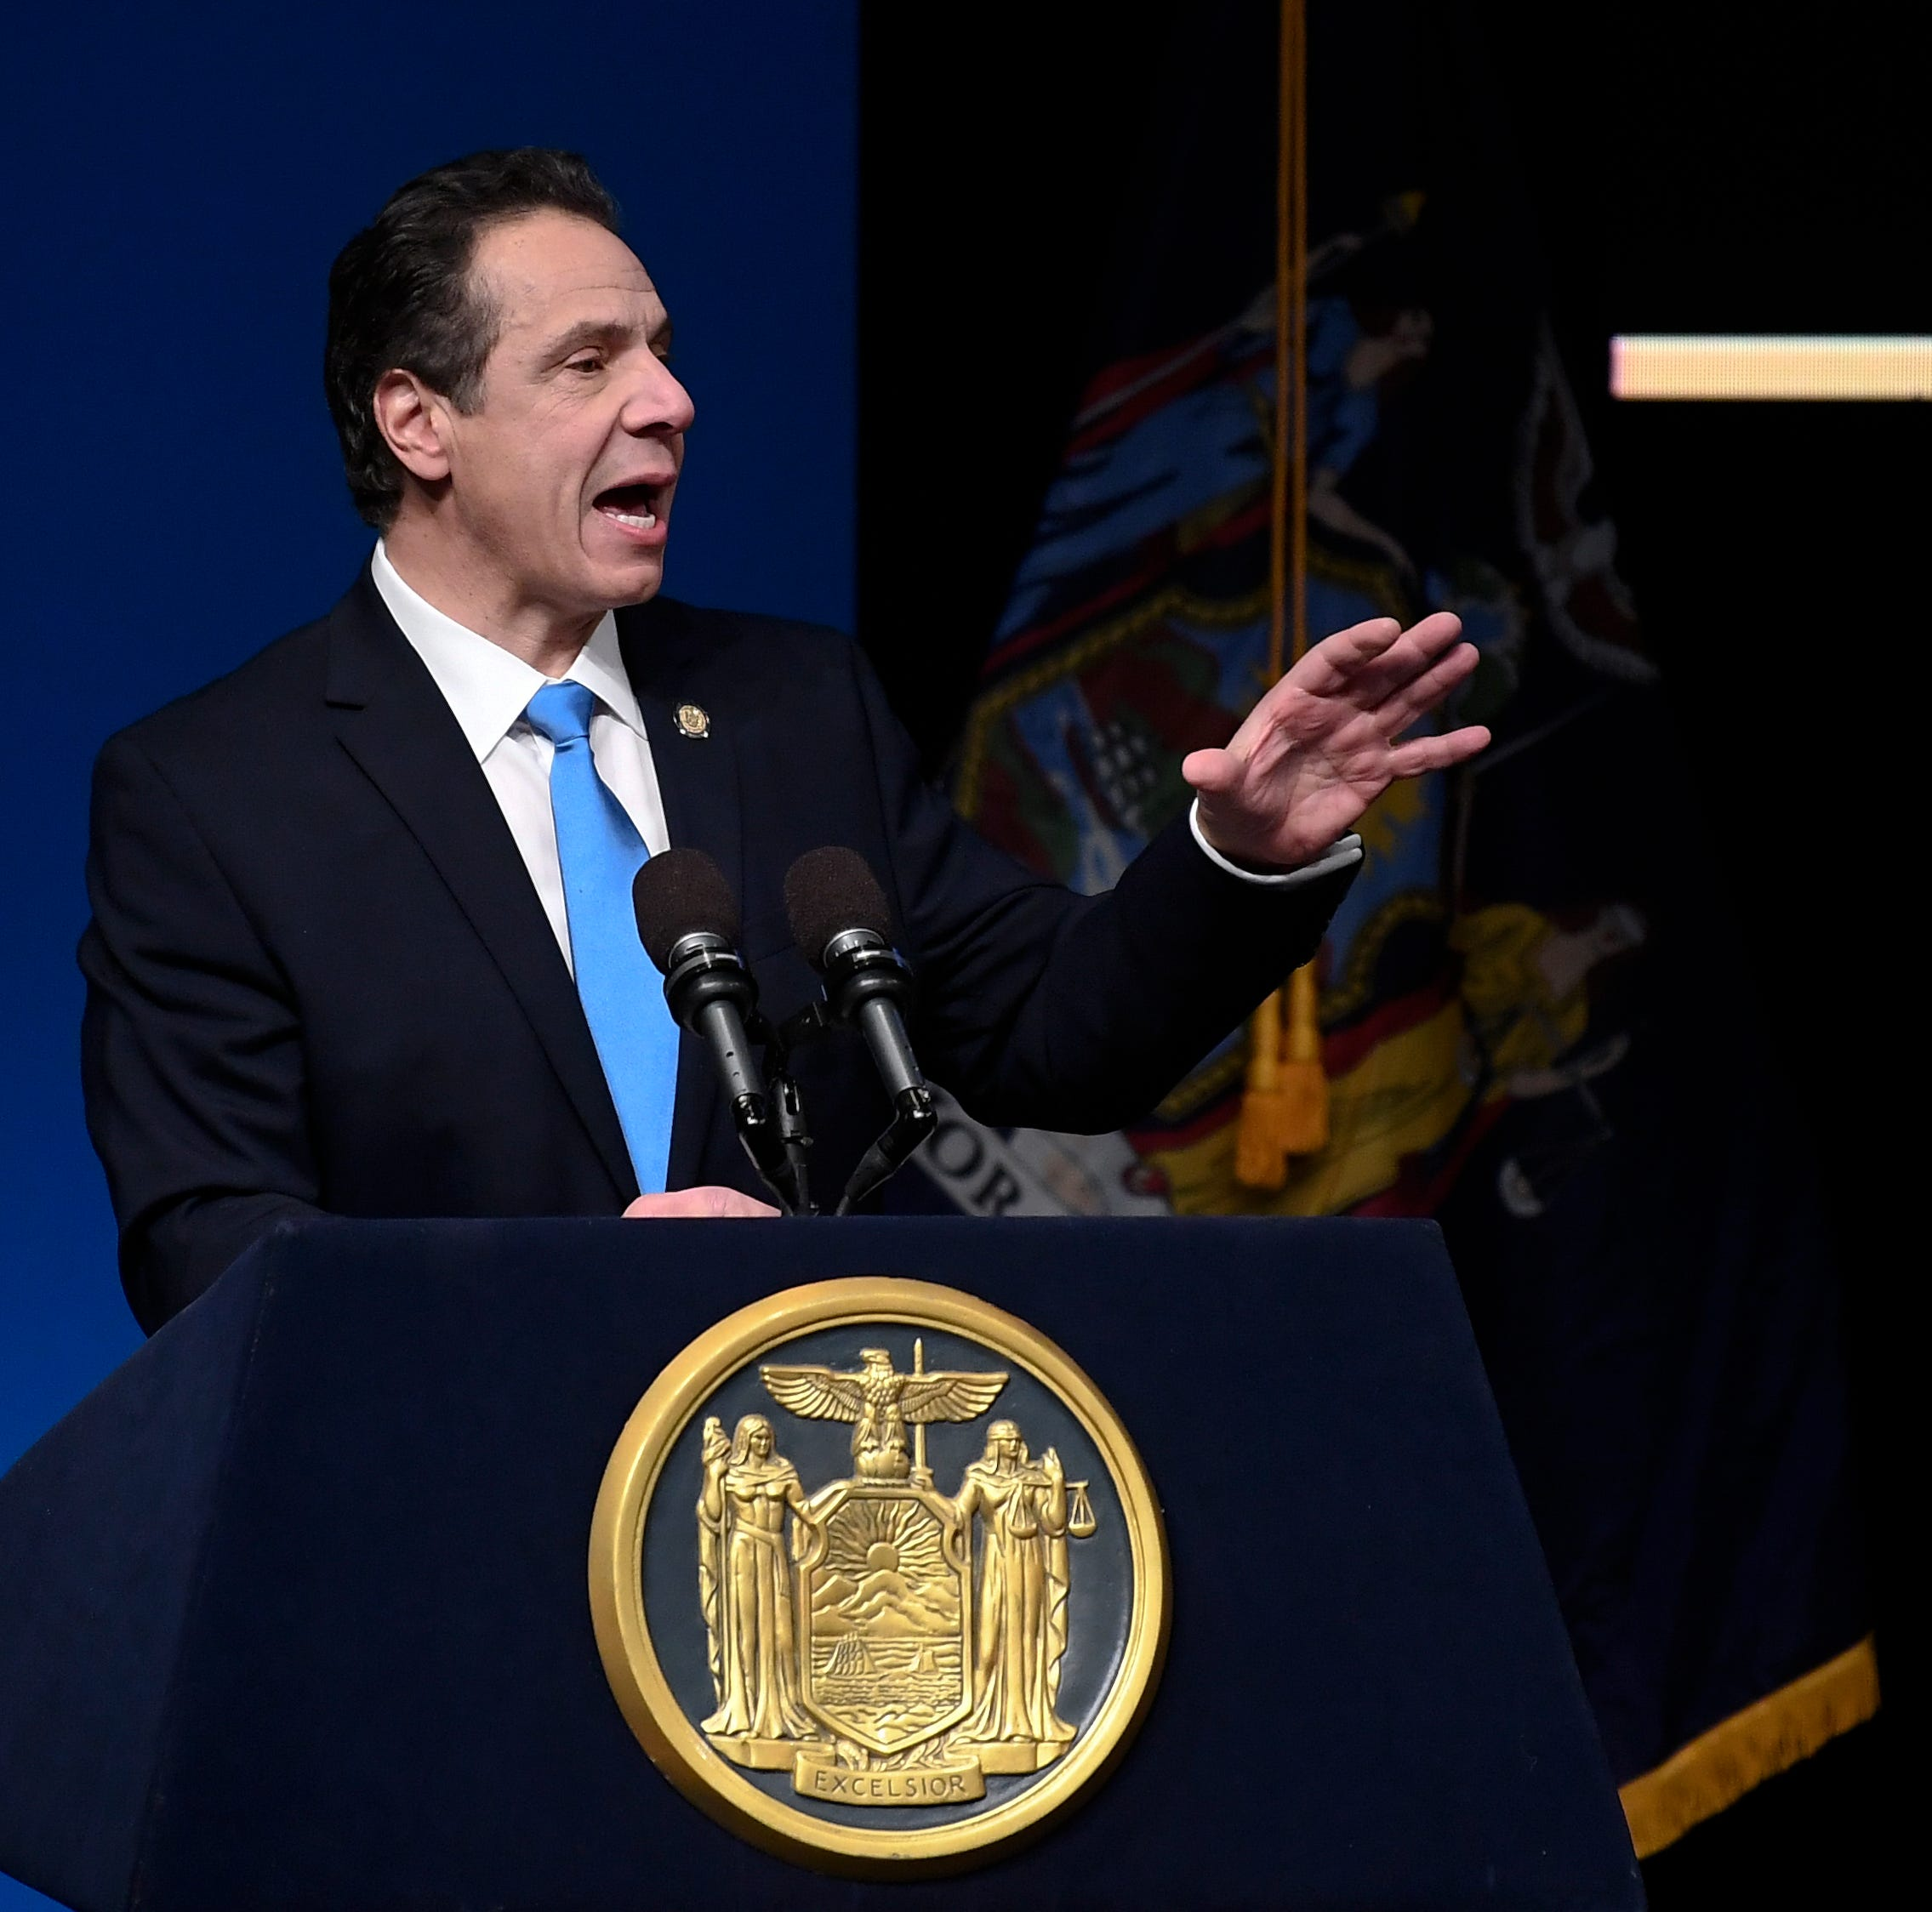 Marijuana in New York: Here's how Andrew Cuomo plans to legalize, tax it